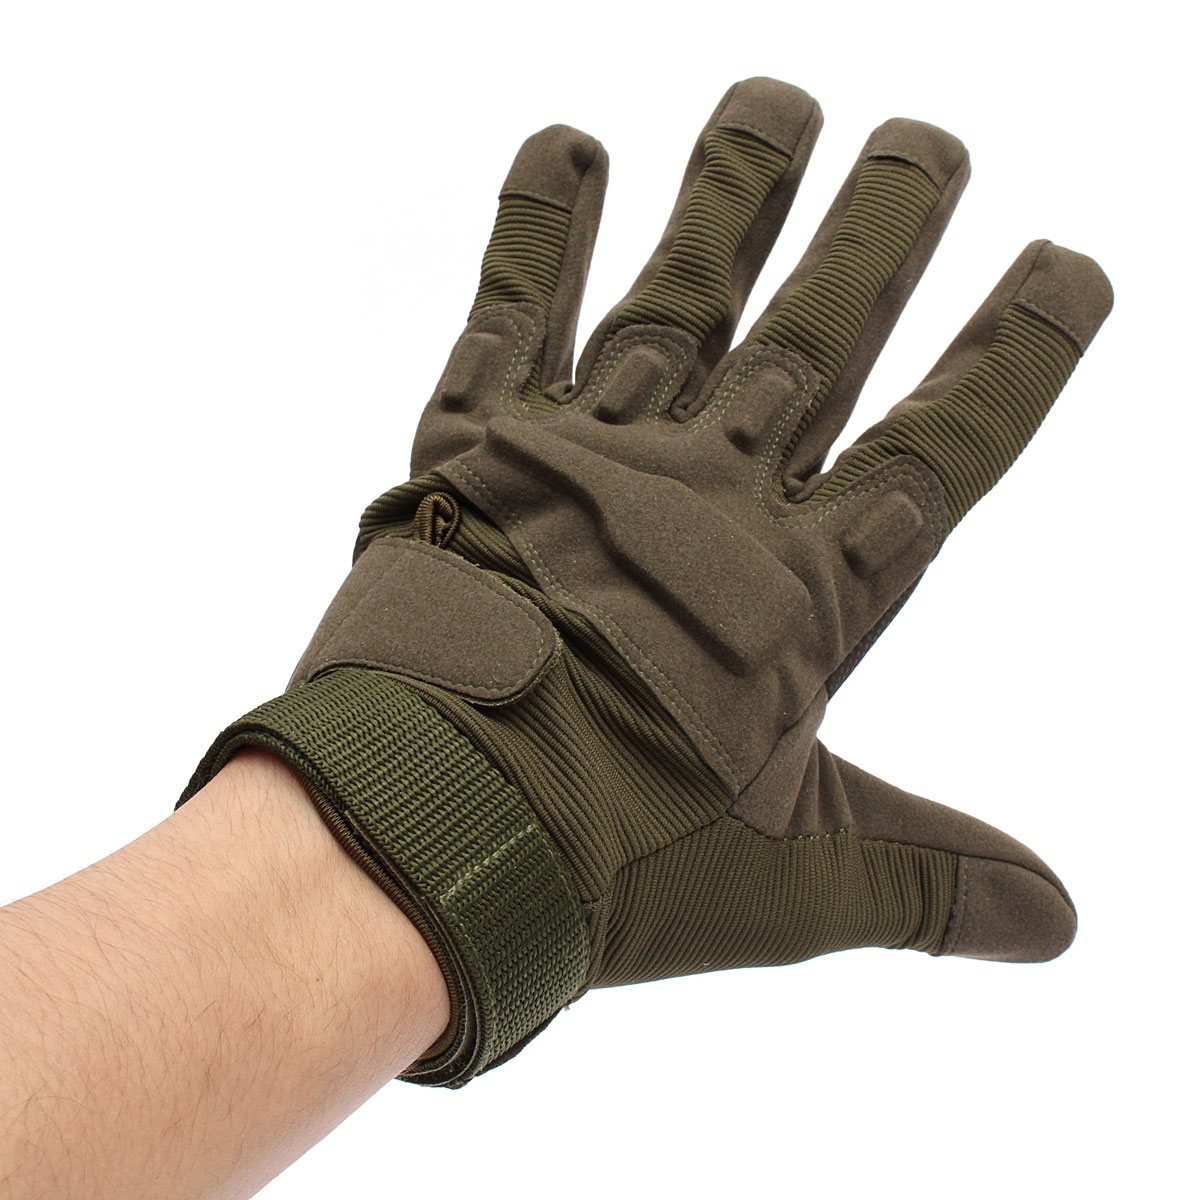 цена на NEW Safurance Anti Slip Full Finger Outdoor Military Airsoft Hunting Cycling Tactical Gloves Workplace Safety Protection Glove